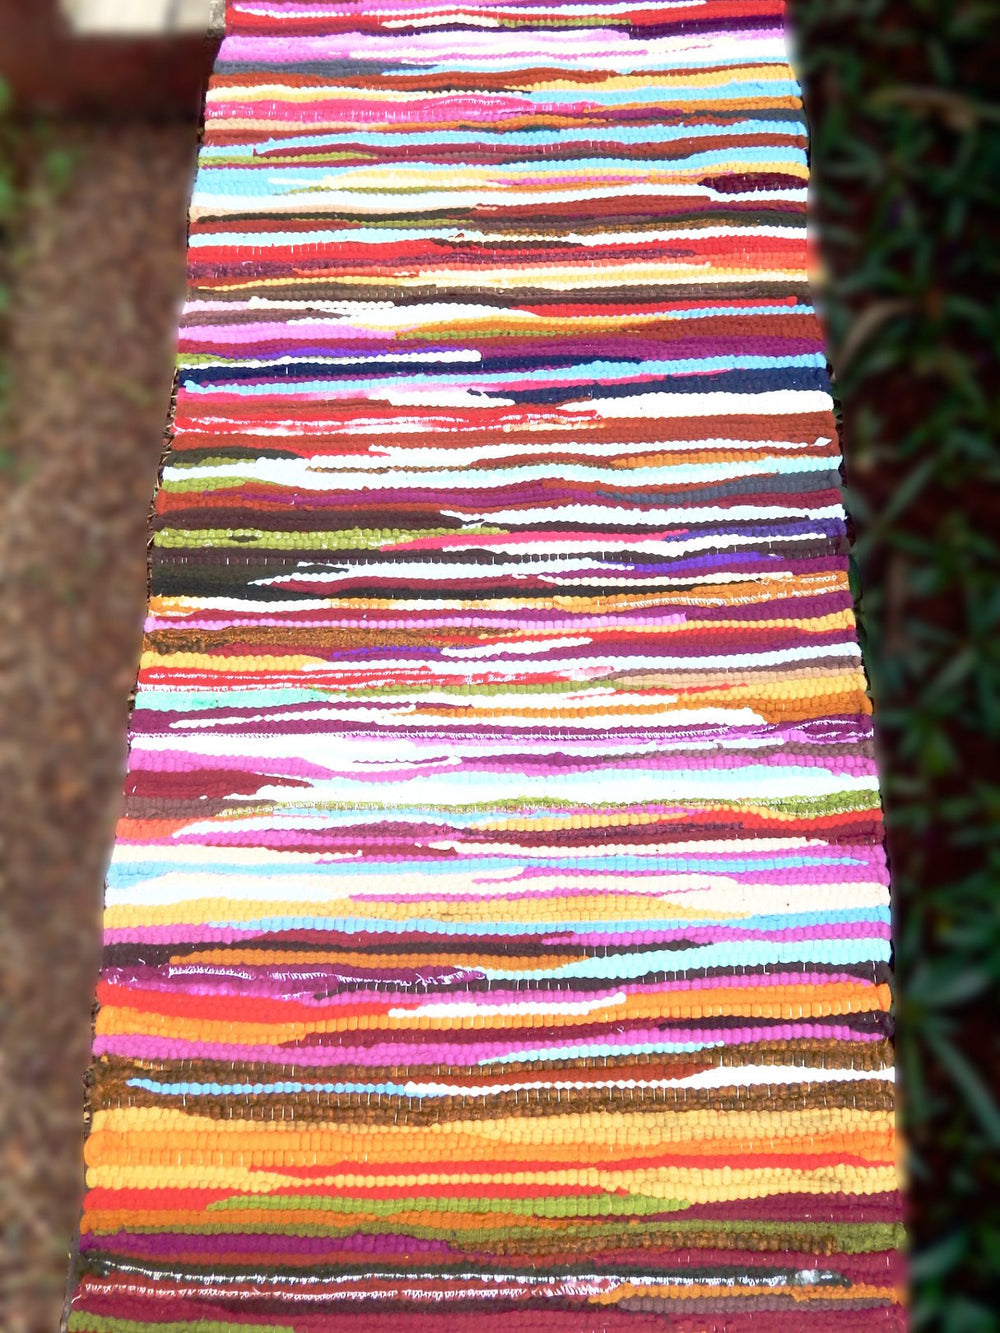 Upcycled series rangeela I table runner or bed footer mat c